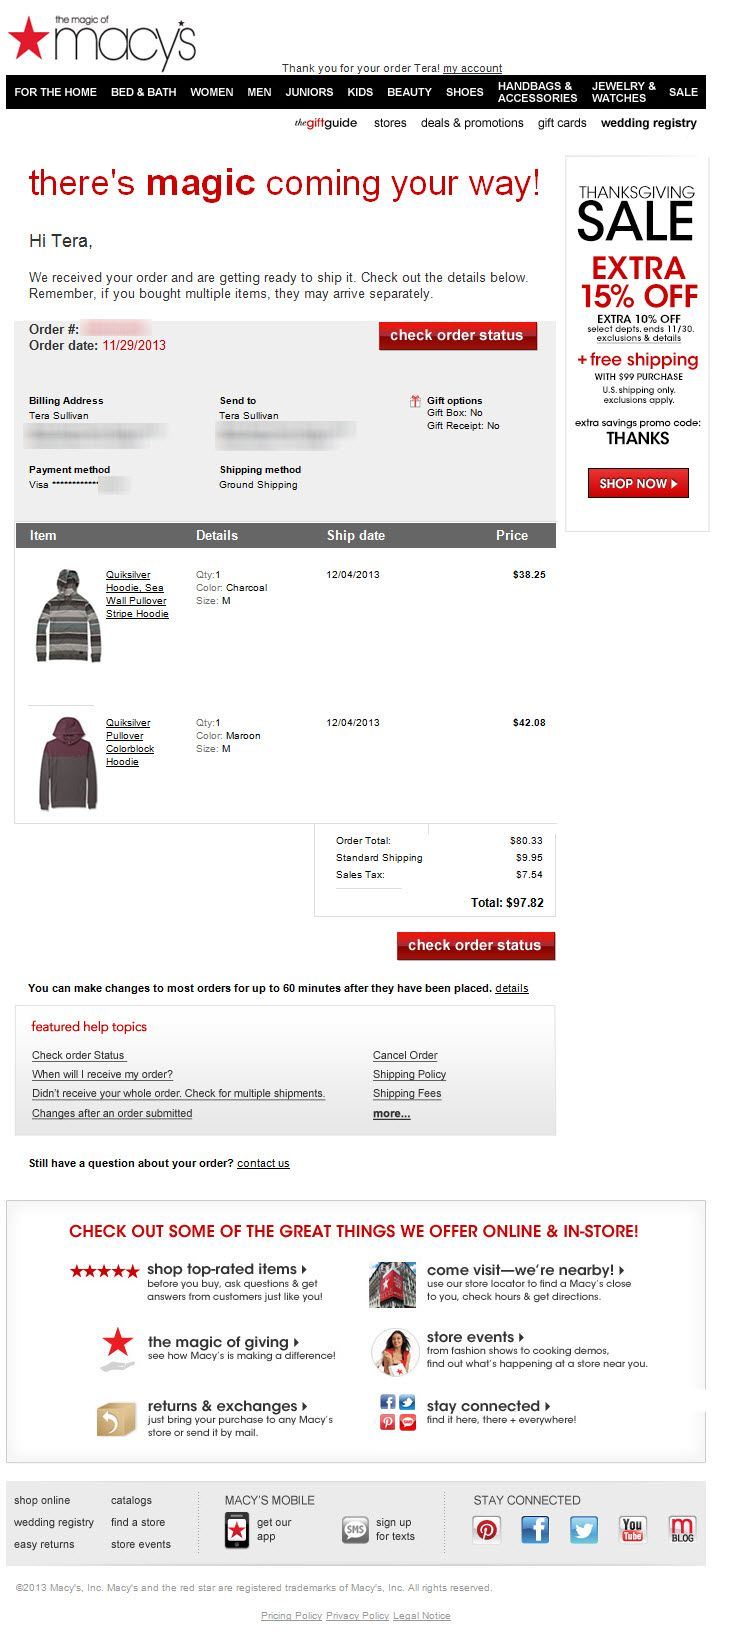 SL:'Your Macy's order ' Macy's order confirm email from holiday 2013